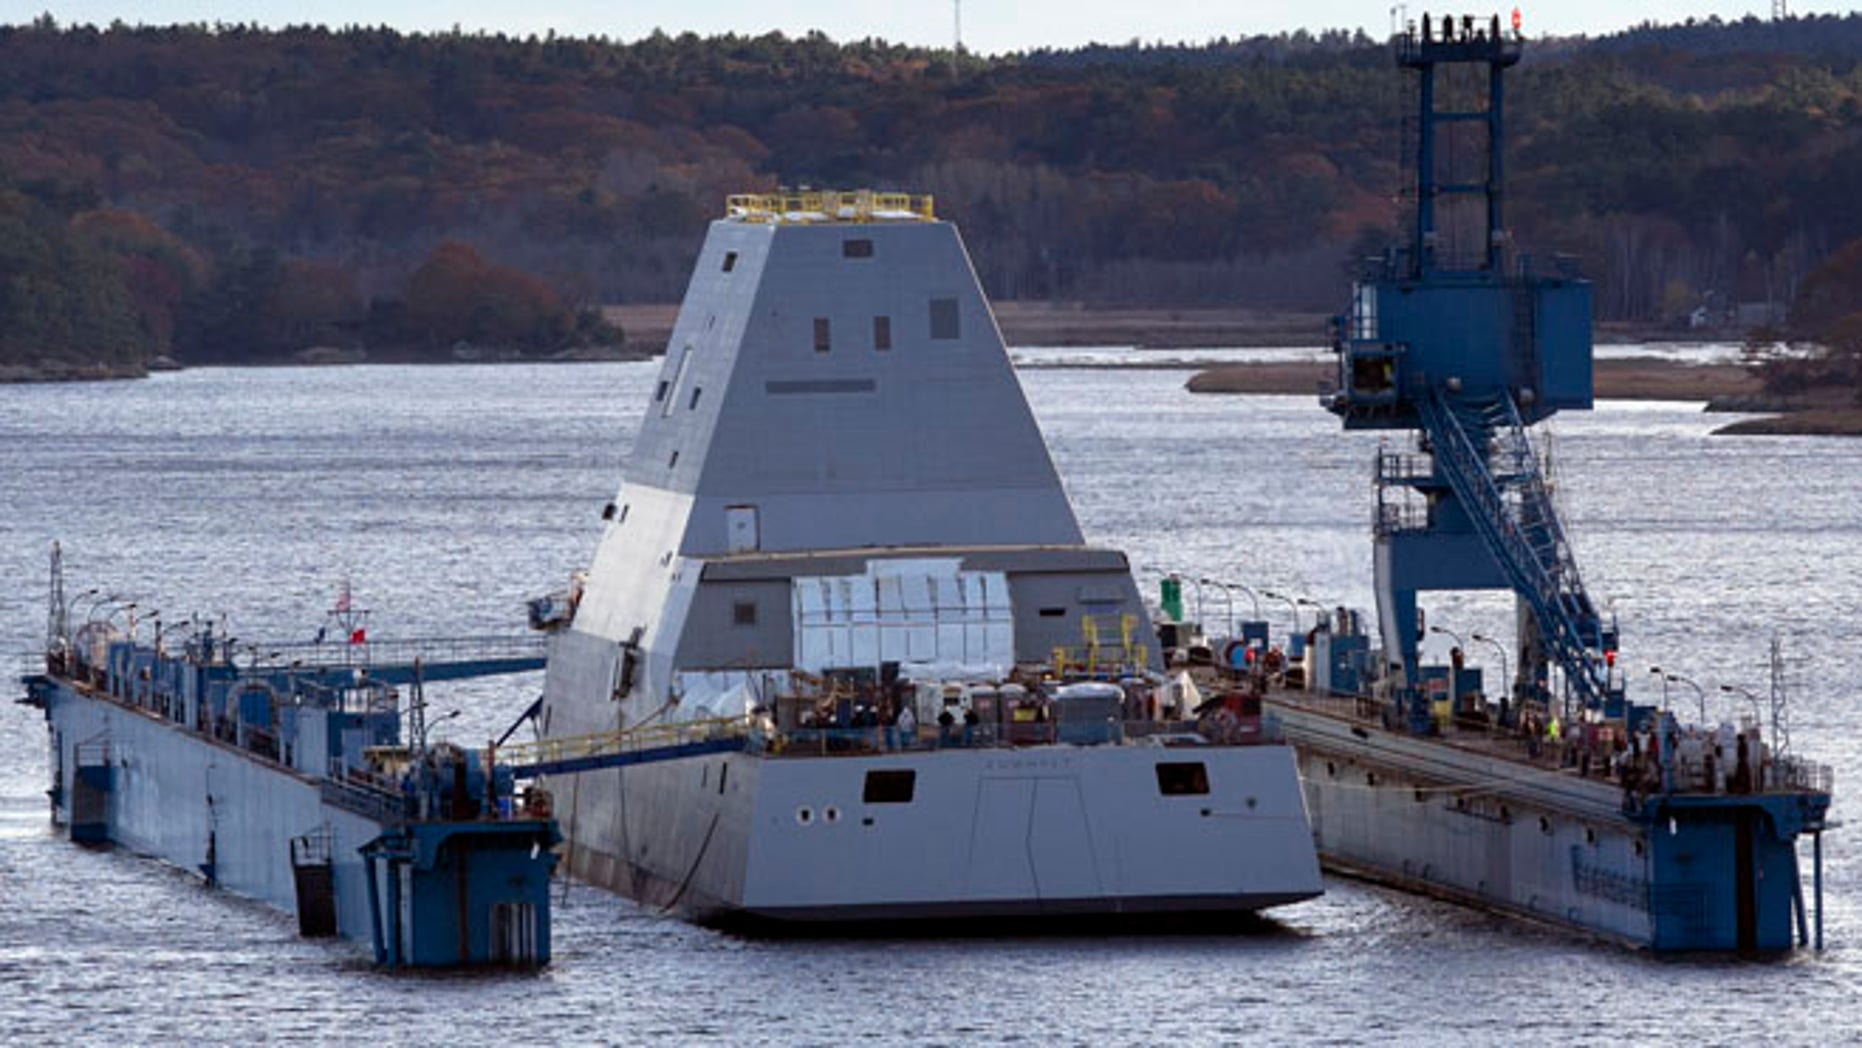 Oct. 28, 2013: The first-in-class Zumwalt, the largest U.S. Navy destroyer ever built, floats off a submerged dry dock in the Kennebec River, in Bath, Maine.